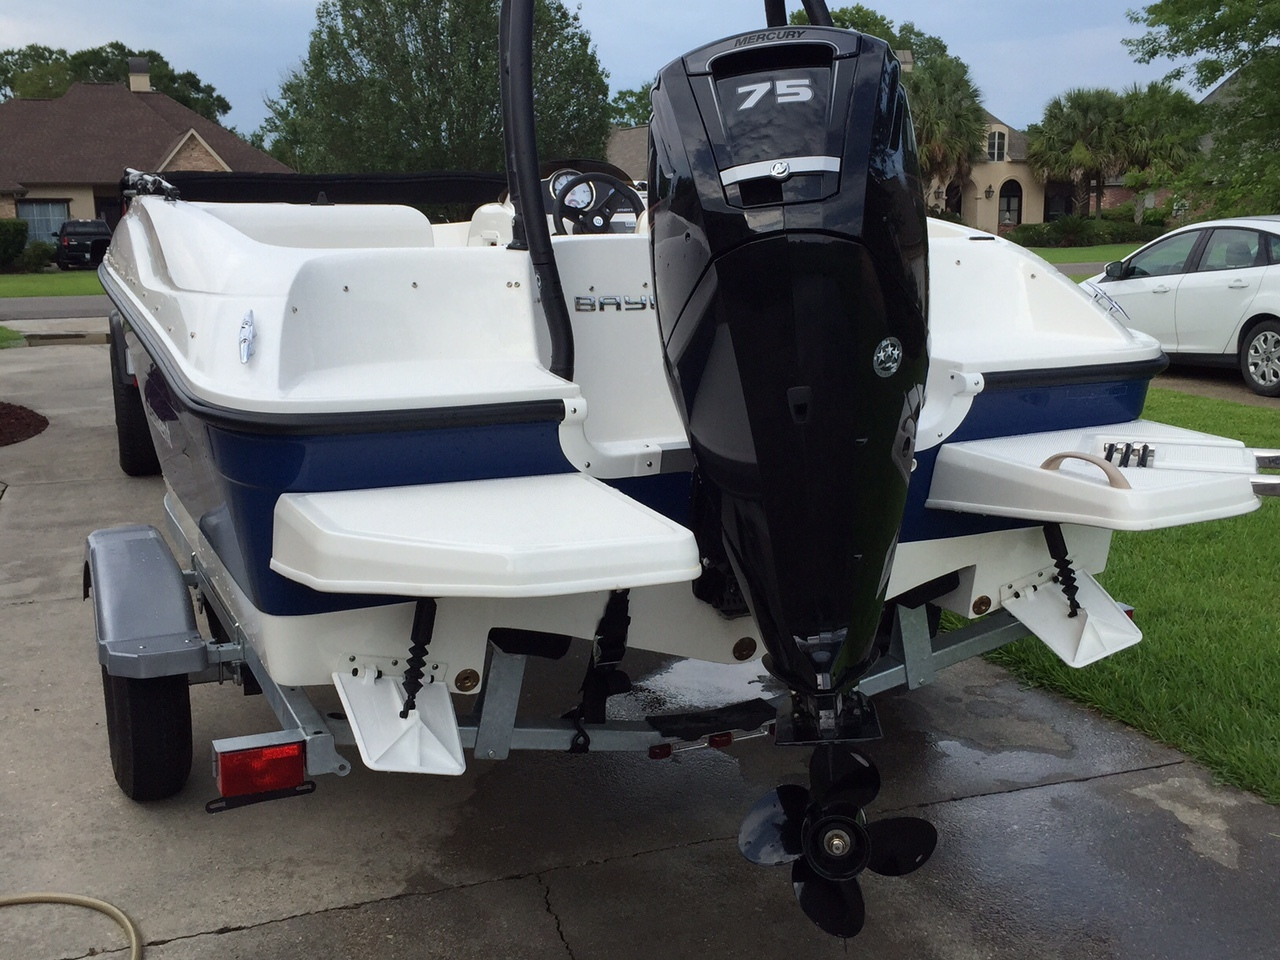 Element - Water in sponsons? Help! - BAYLINER OWNERS CLUB